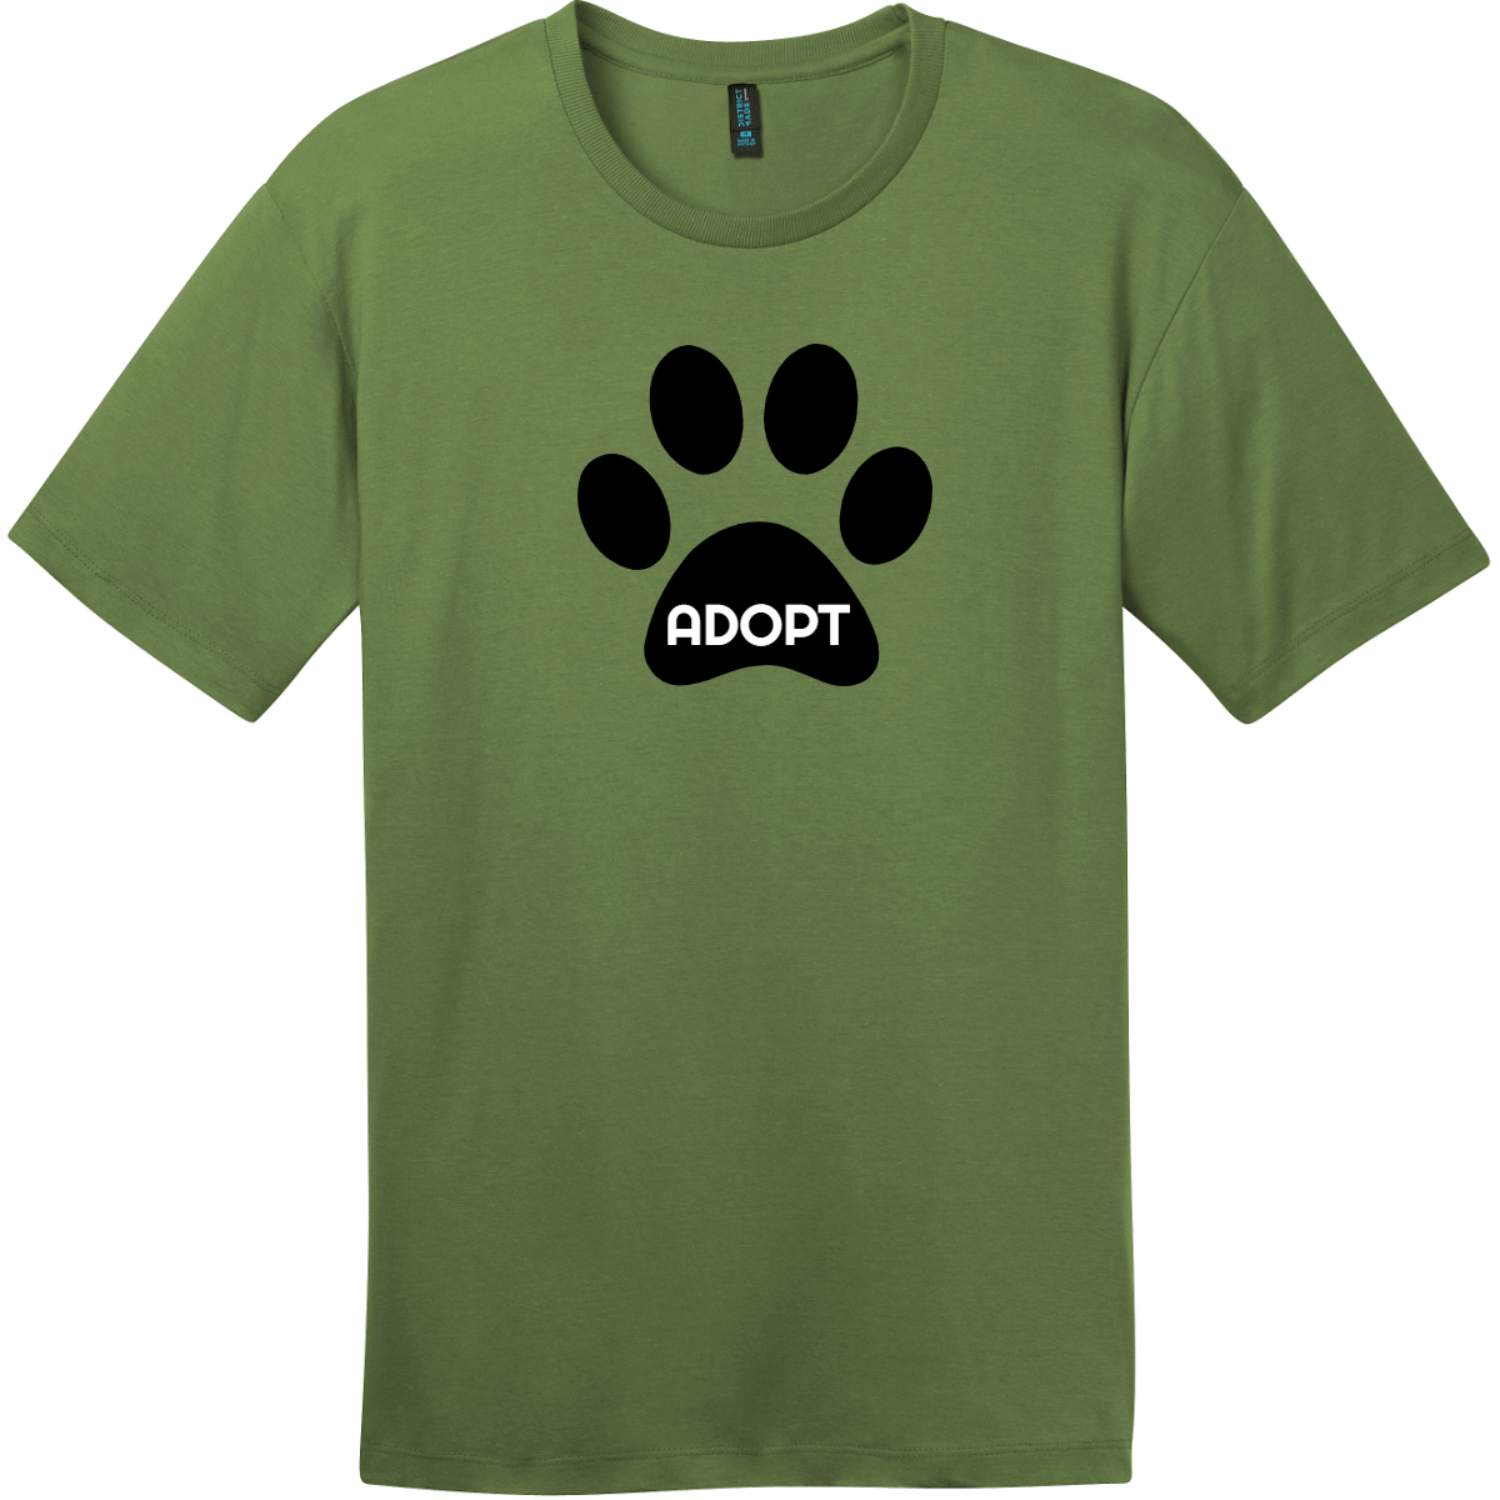 Adopt Pet Paw T-Shirt Fresh Fatigue District Perfect Weight Tee DT104